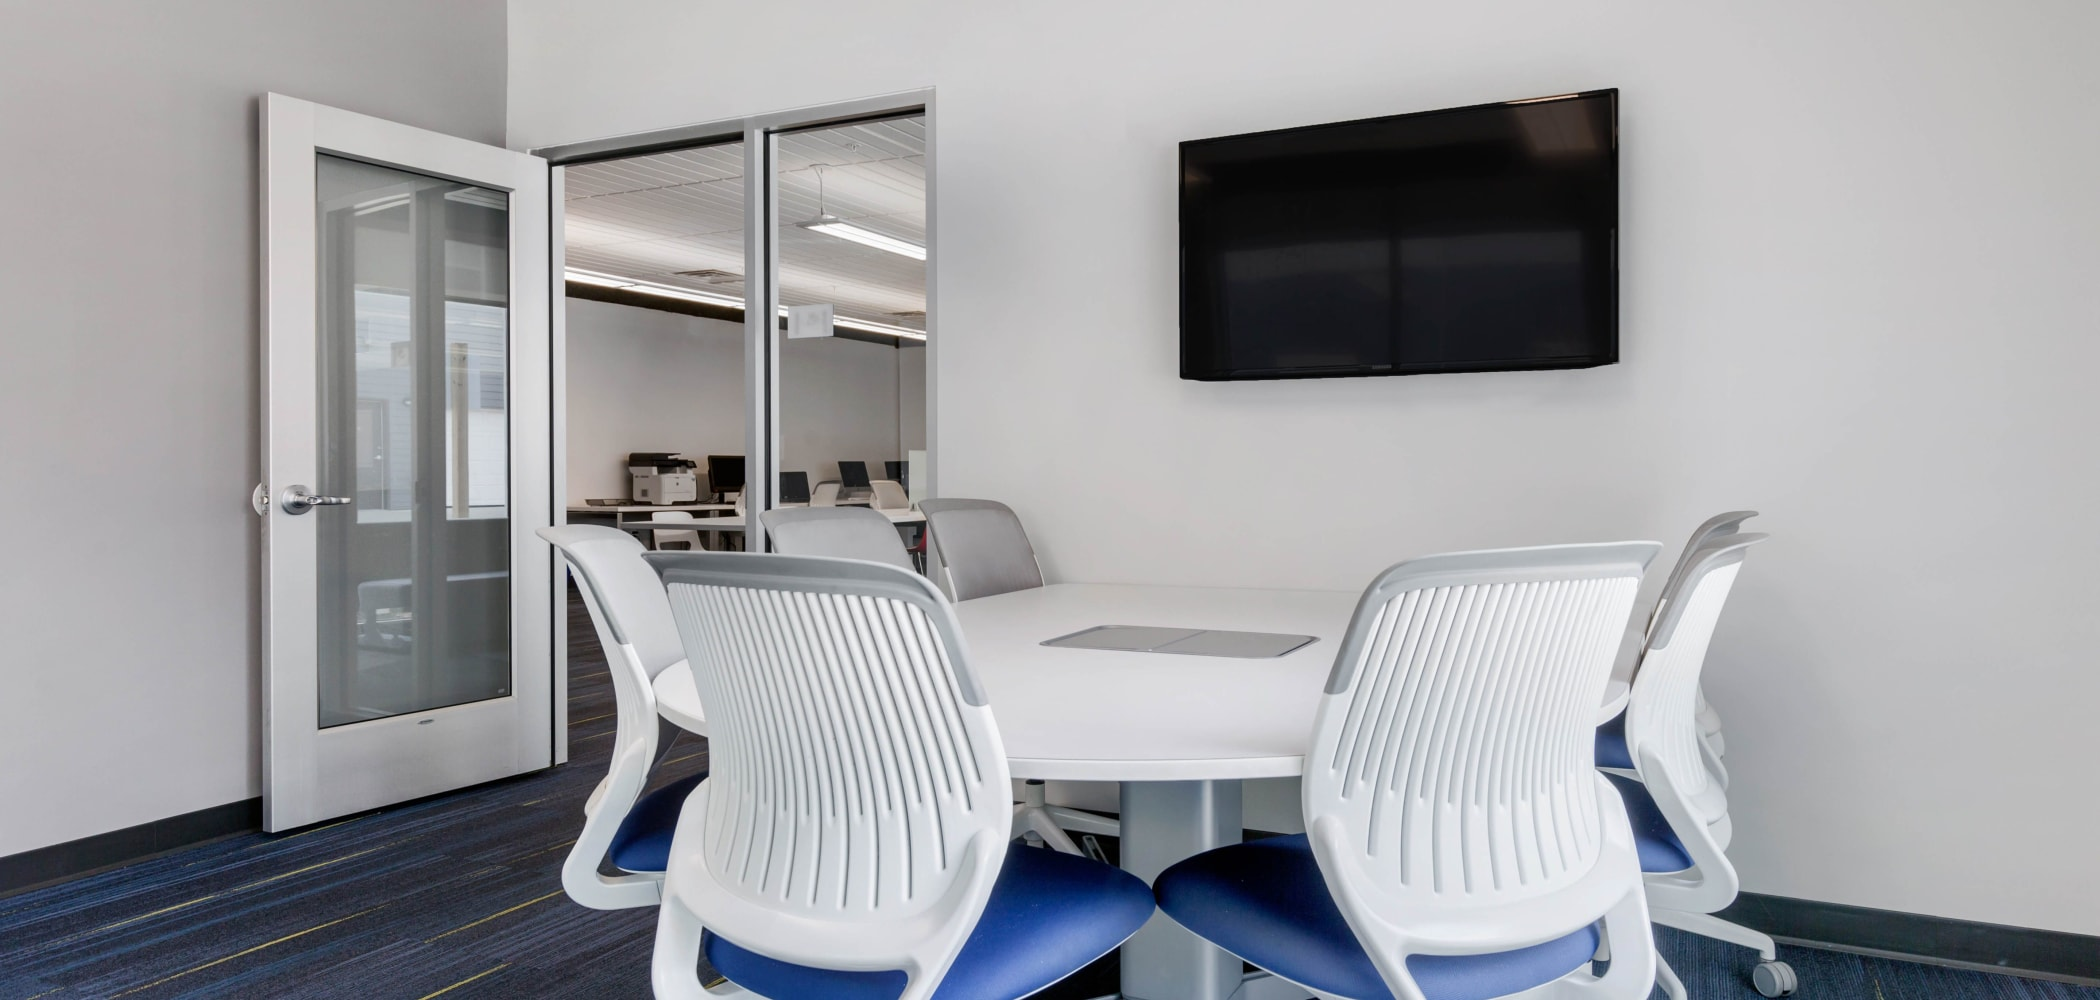 Private study spaces at West Quad in Champaign, Illinois